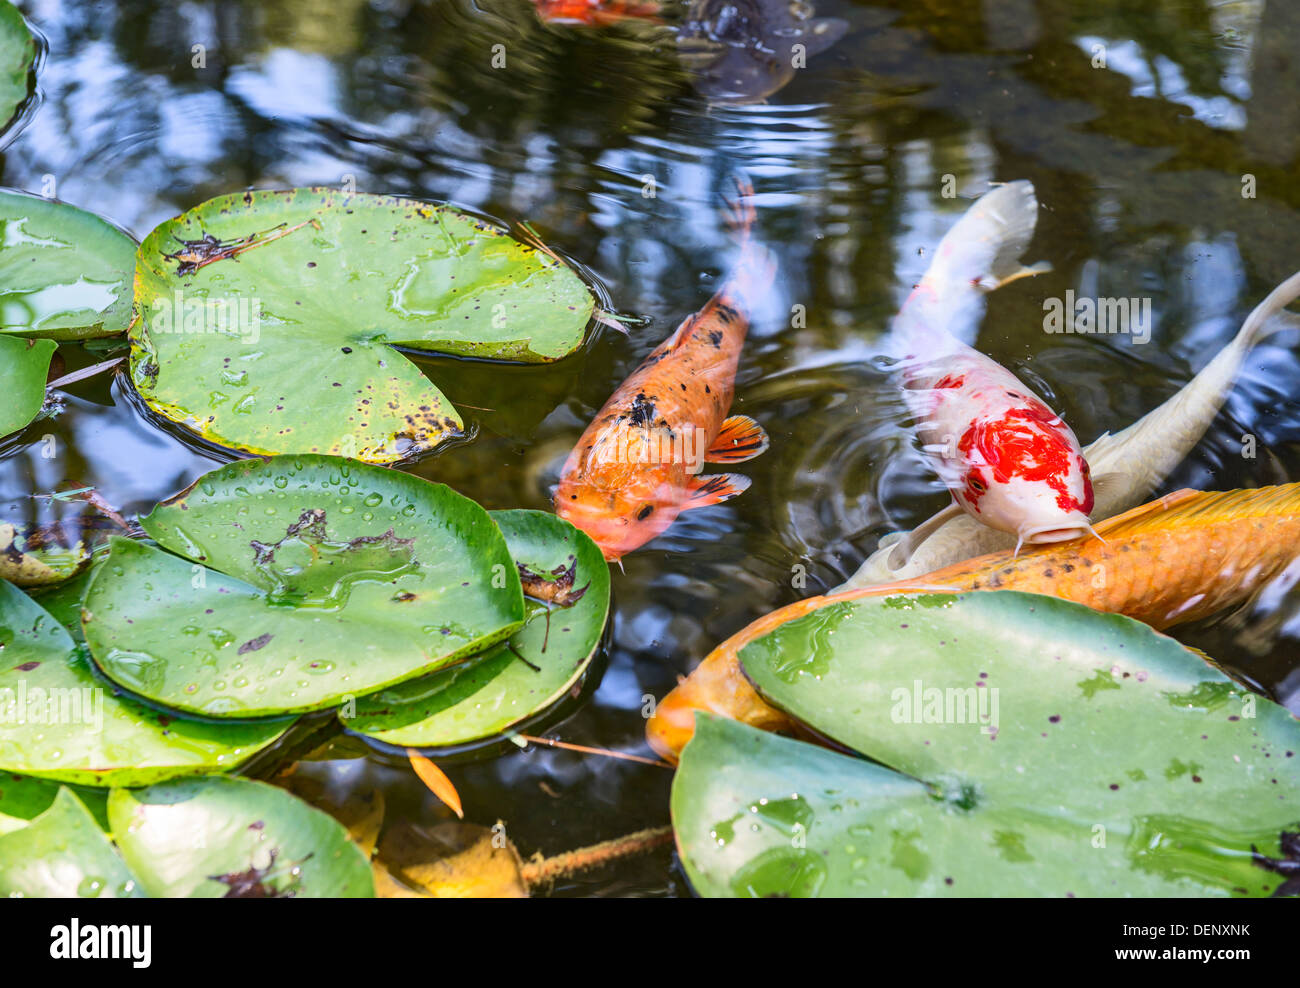 Beautiful koi fish and lily pads in a garden stock photo for Koi fish water